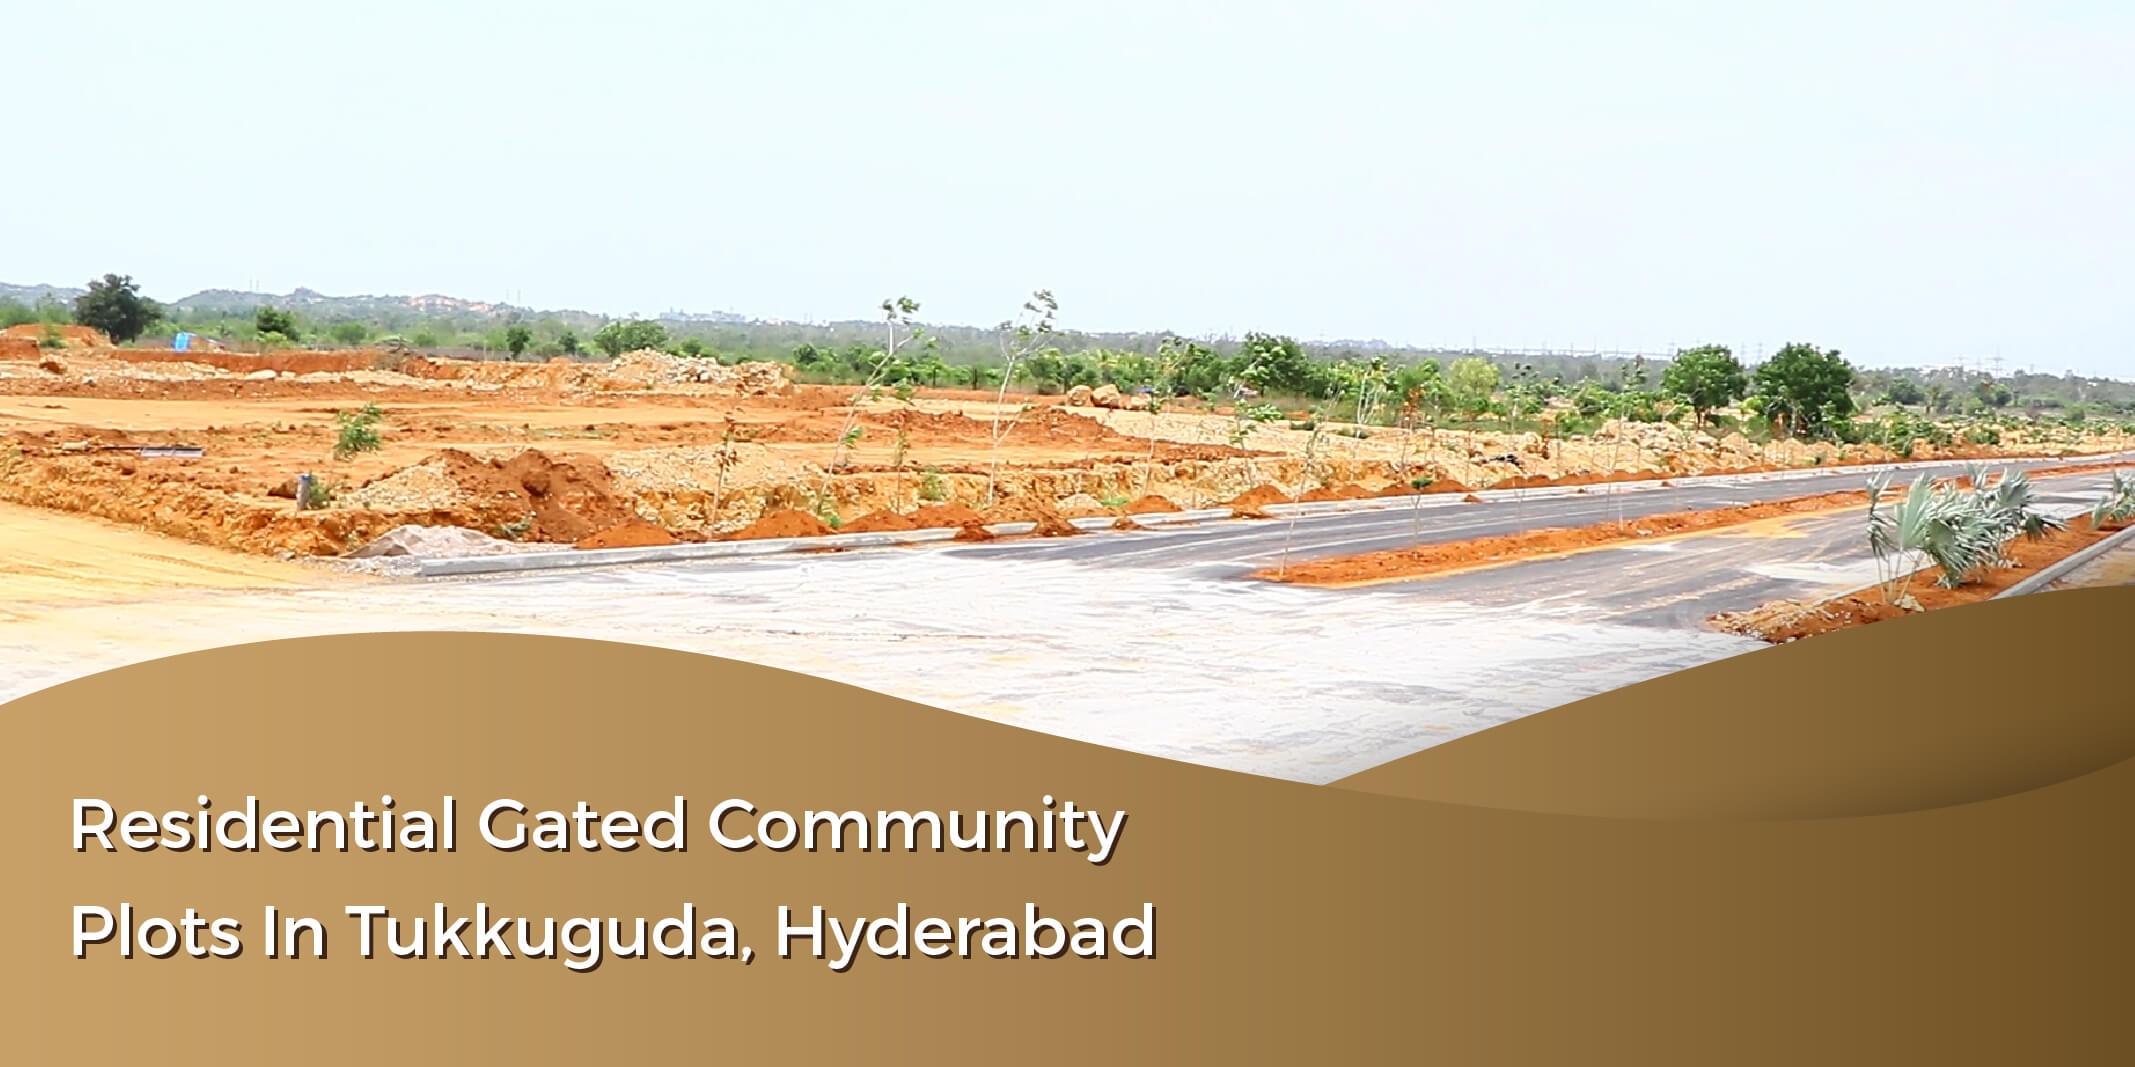 Residential gated community plots in Tukkuguda, Hyderabad